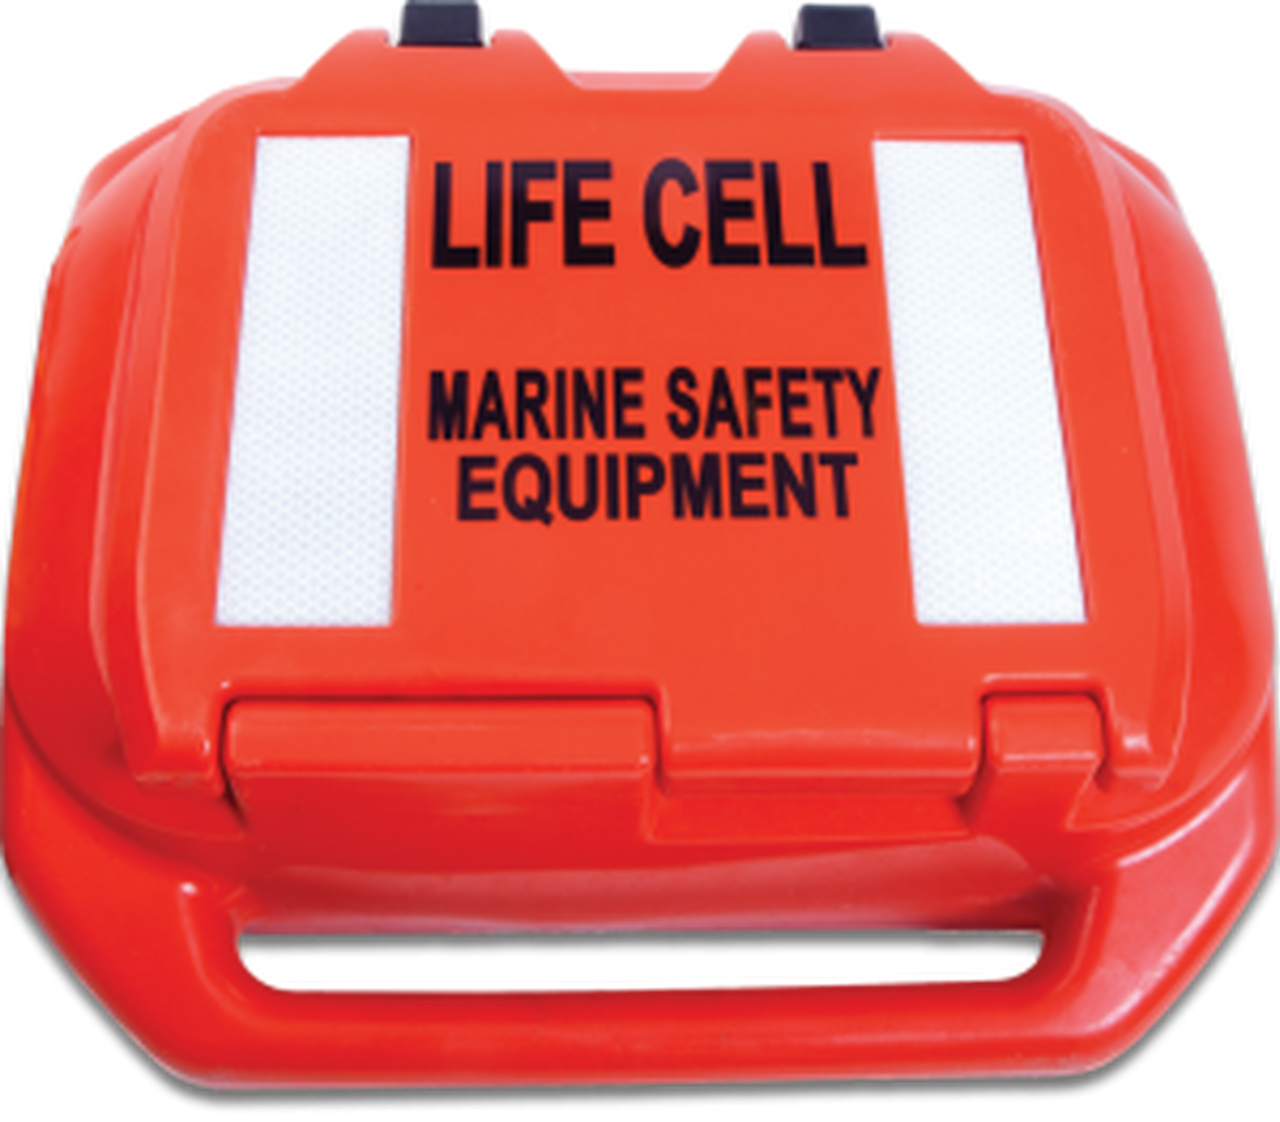 Life Cell Marine Safety Trailer Boat Kit - 2-4 Person 226451